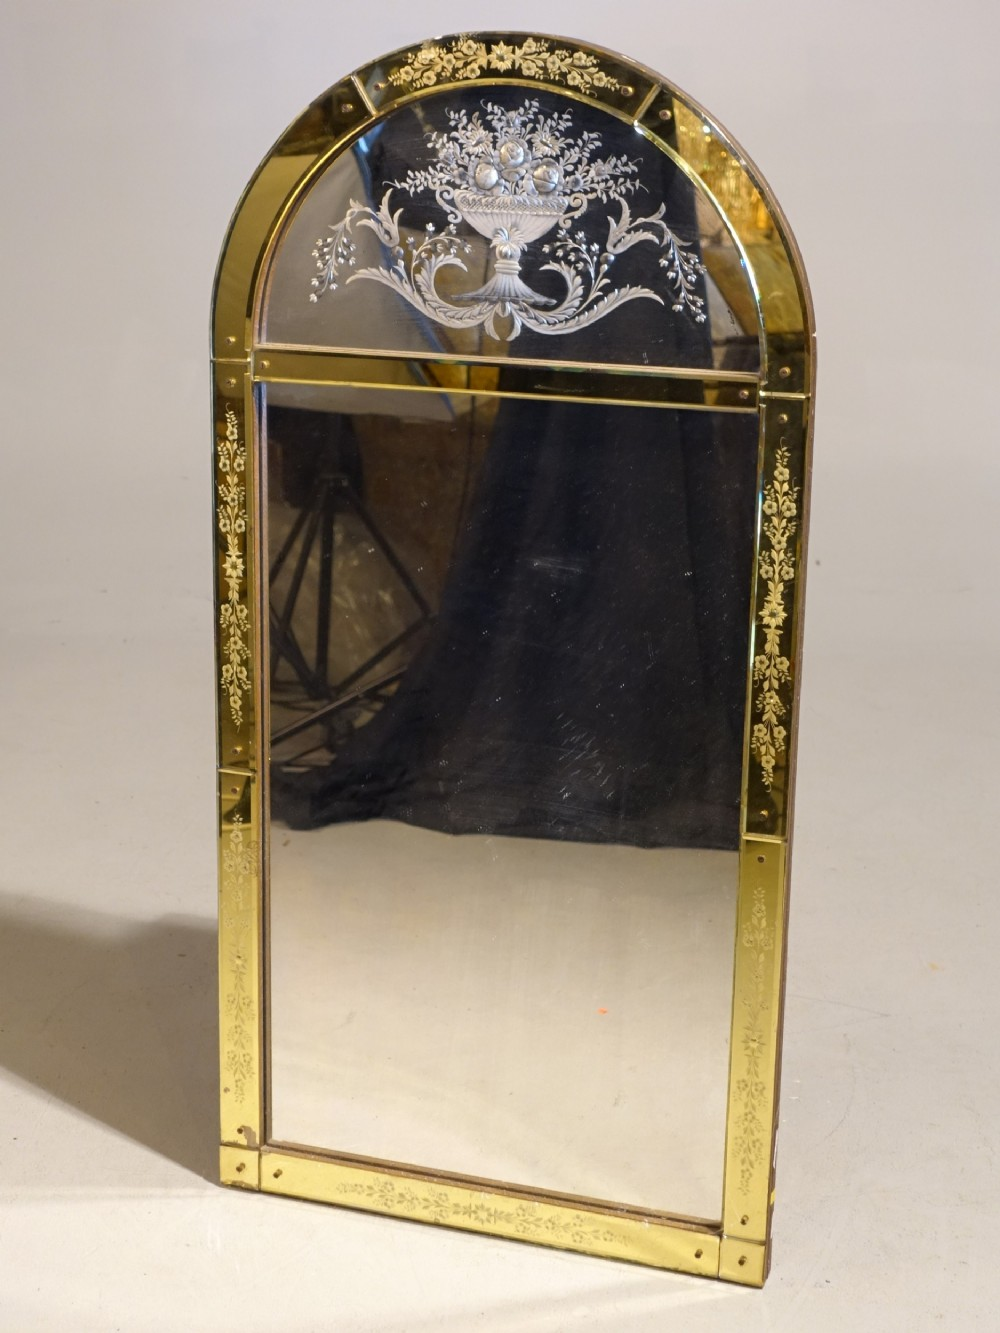 An Exceptional Early 20th Century English Mirror In The Venetian Taste 739153 Sellingantiques Co Uk